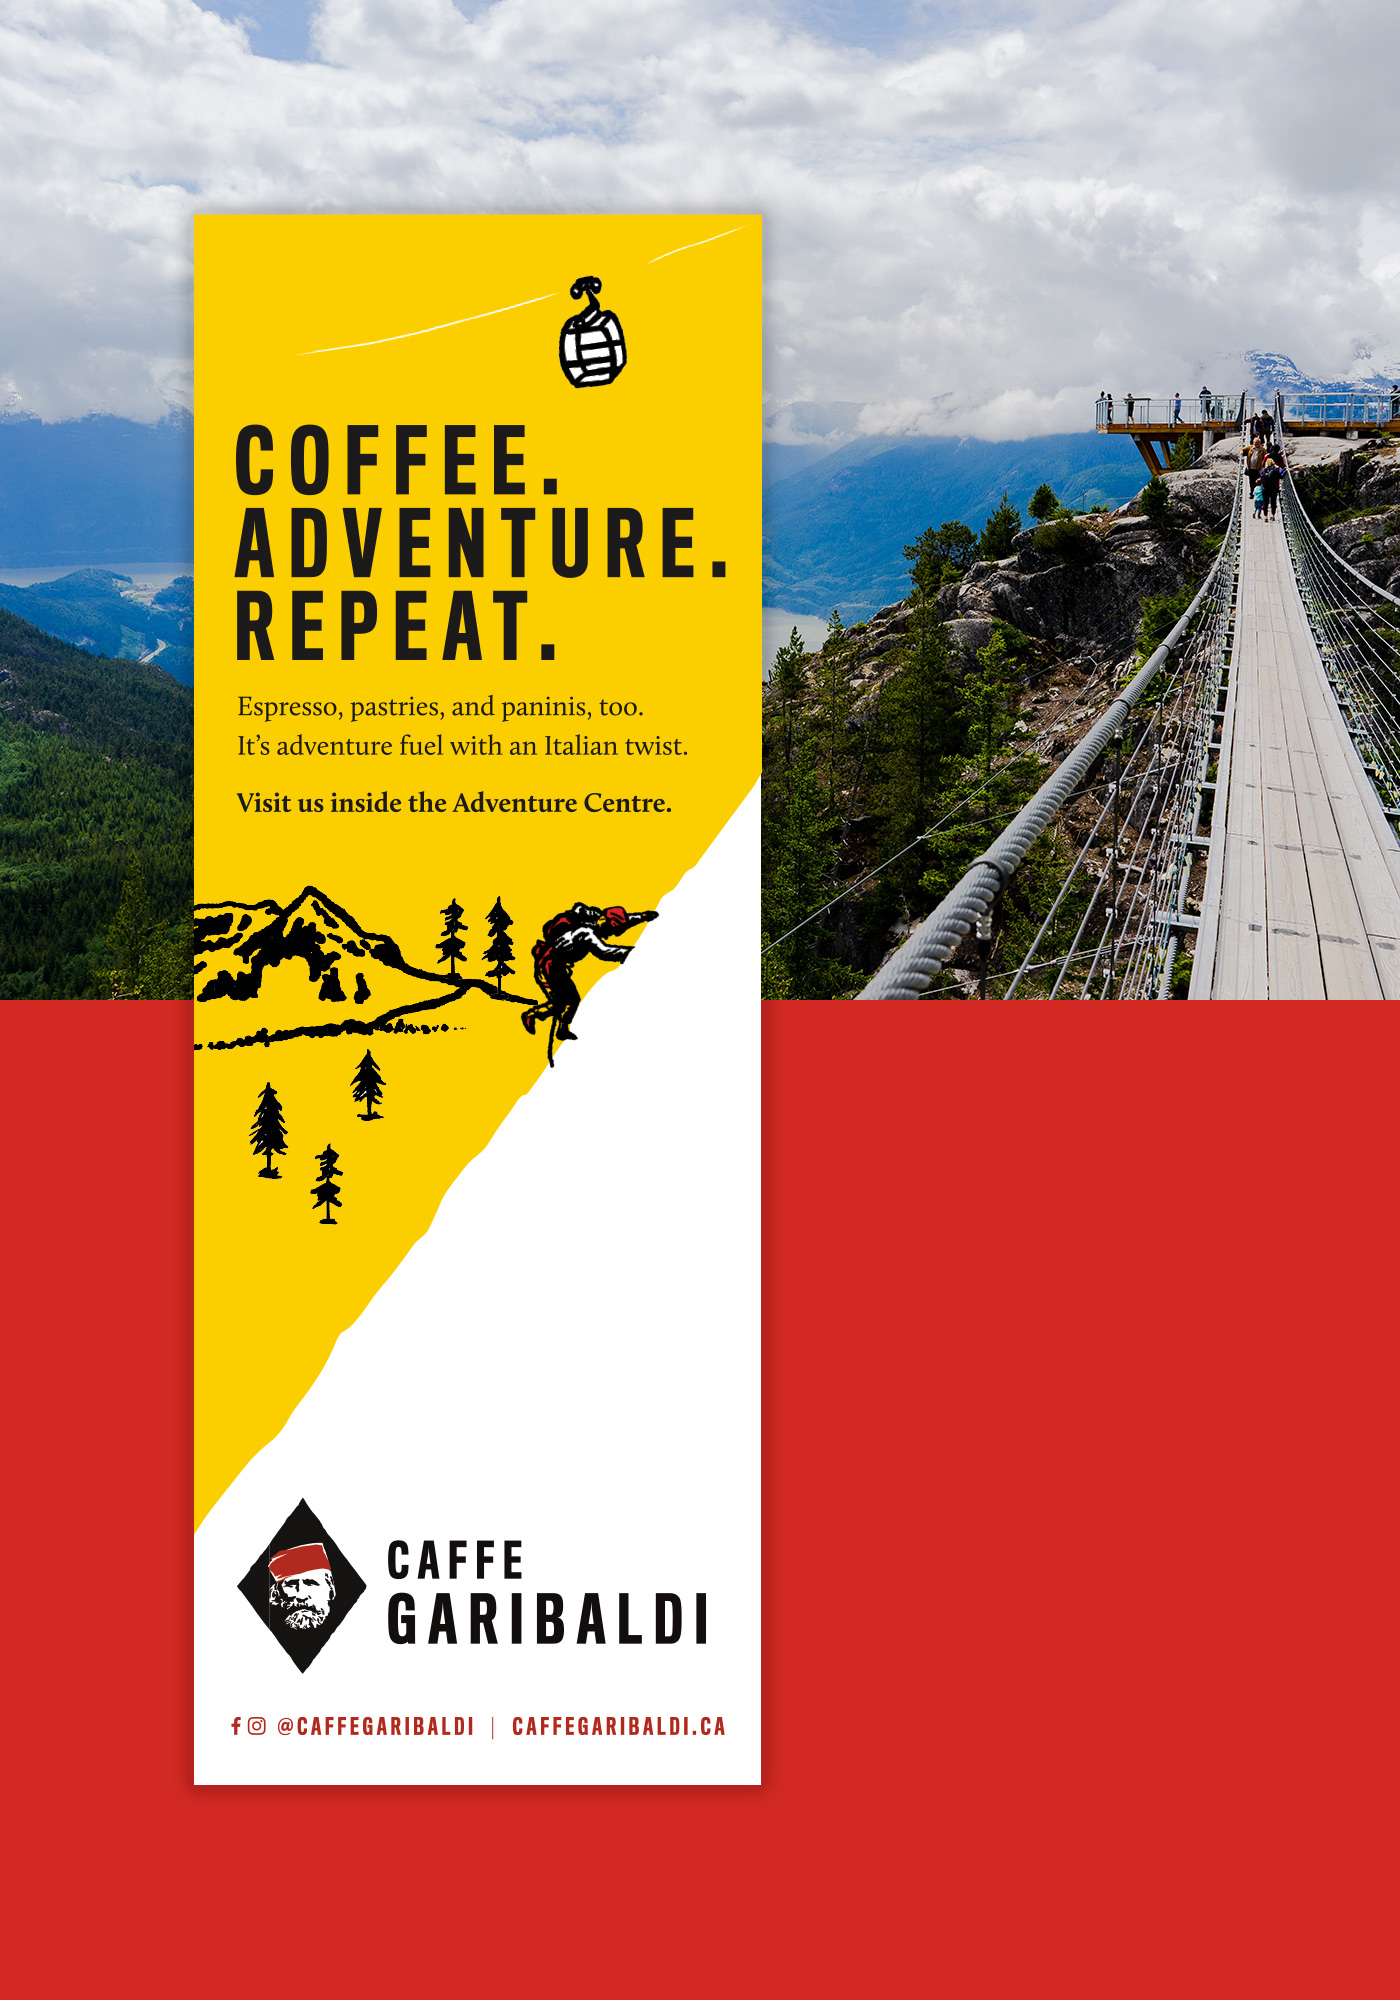 Caffe Garibaldi ad design by Vancouver-based creative collective, Flipside Creative.